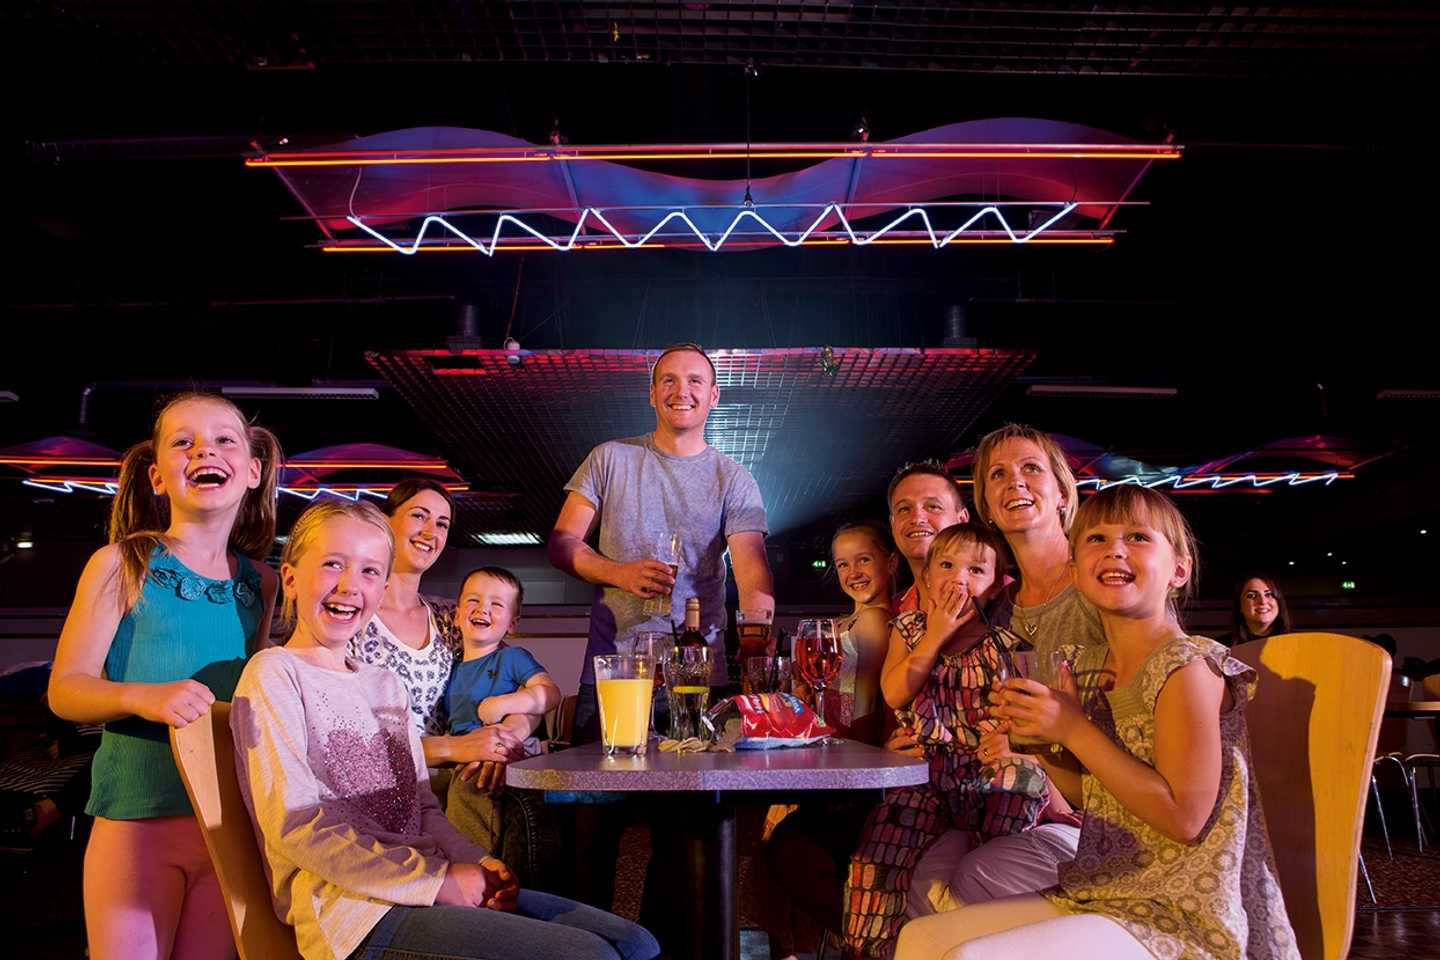 Family enjoying the entertainment in Bugsy's ShowBar at Devon Cliffs